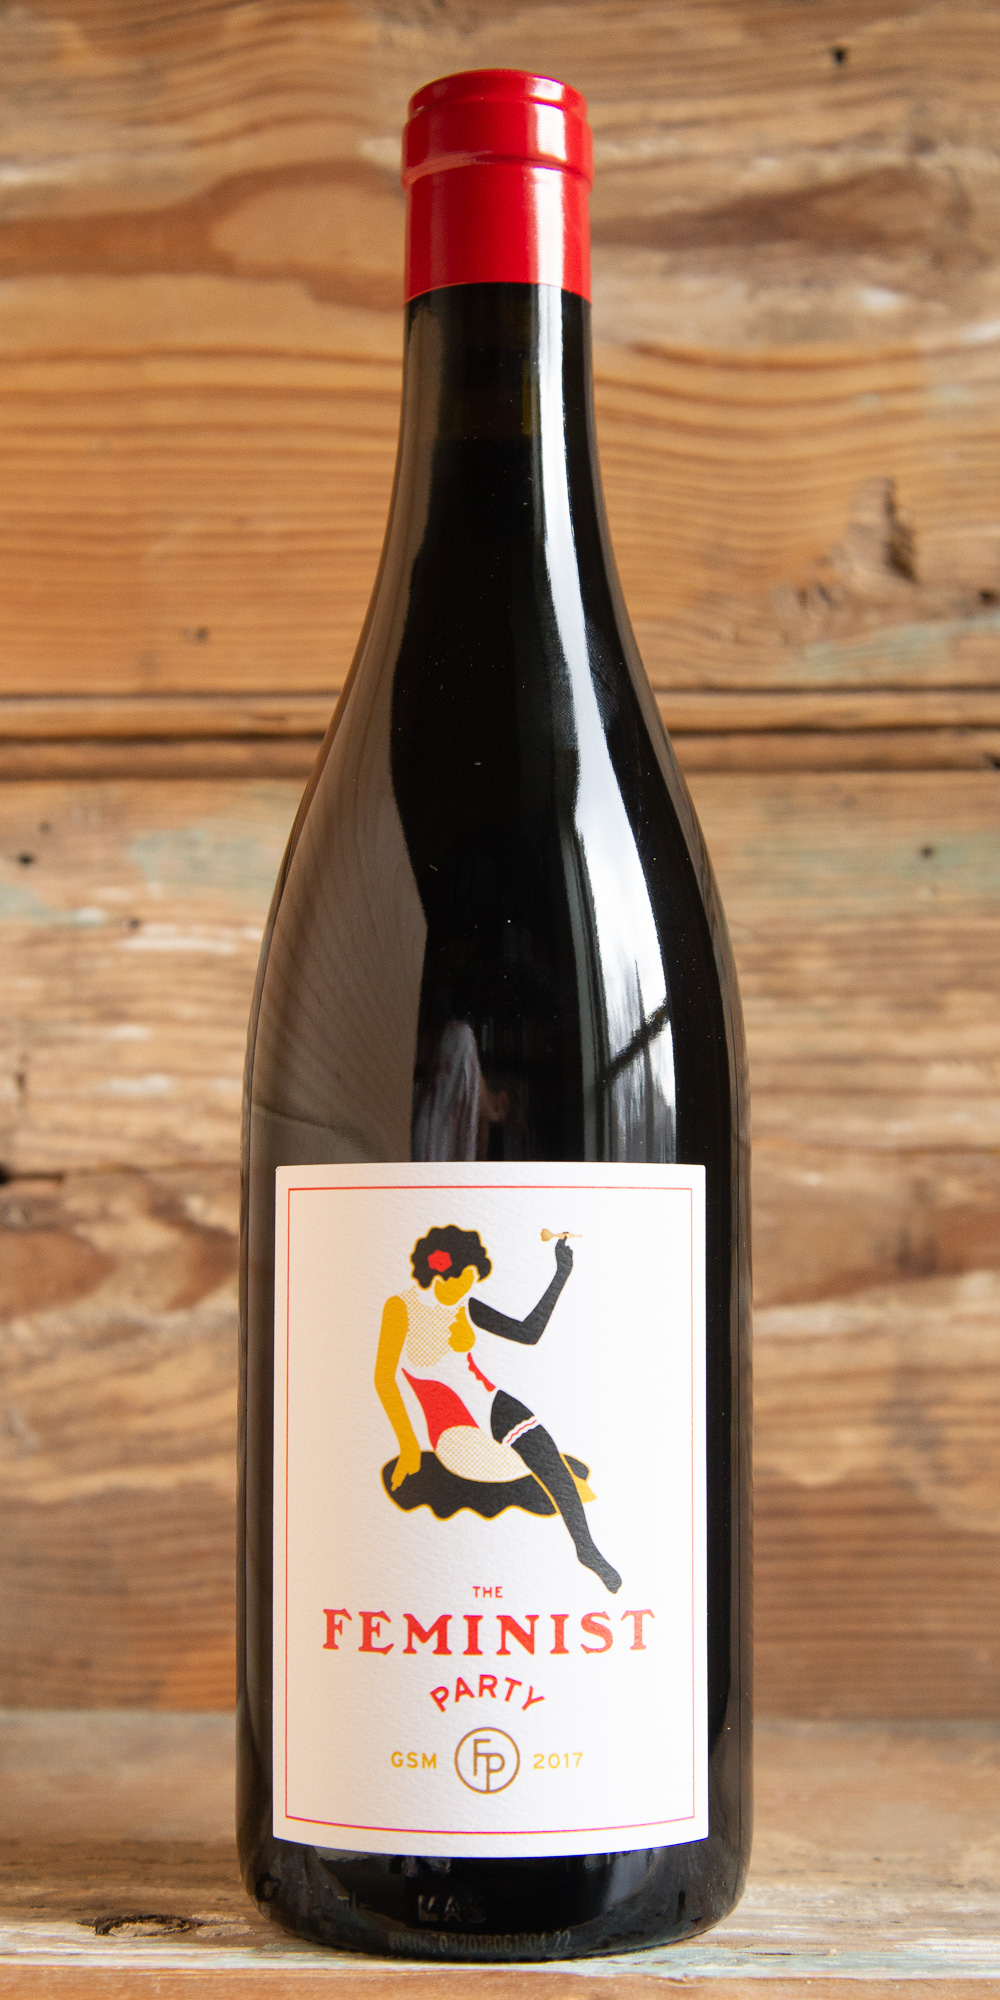 Casa Dumetz The Feminist Party 2016 - Origin: CaliforniaRetail: $34.95 | Sale: $31.45Owner and winemaker Sonja Magdevski created this GSM blend in honor of the fabulous women who have graced her life as well as the wonderful men who have supported her along the way. It is a blend of 4 single vineyards, showcasing Santa Barbara County's premiere and distinct growing regions. With less than 300 cases produced, this traditional Rhône blend is produced in an American style. Very bright, cheery aromas translate to the palate and fill your mouth with fresh fruity flavors. This red blend's soft tannins and beautiful acid finish make it an ideal food wine.40% Grenache | 20% Syrah | 20% Mourvèdre | 20% Graciano